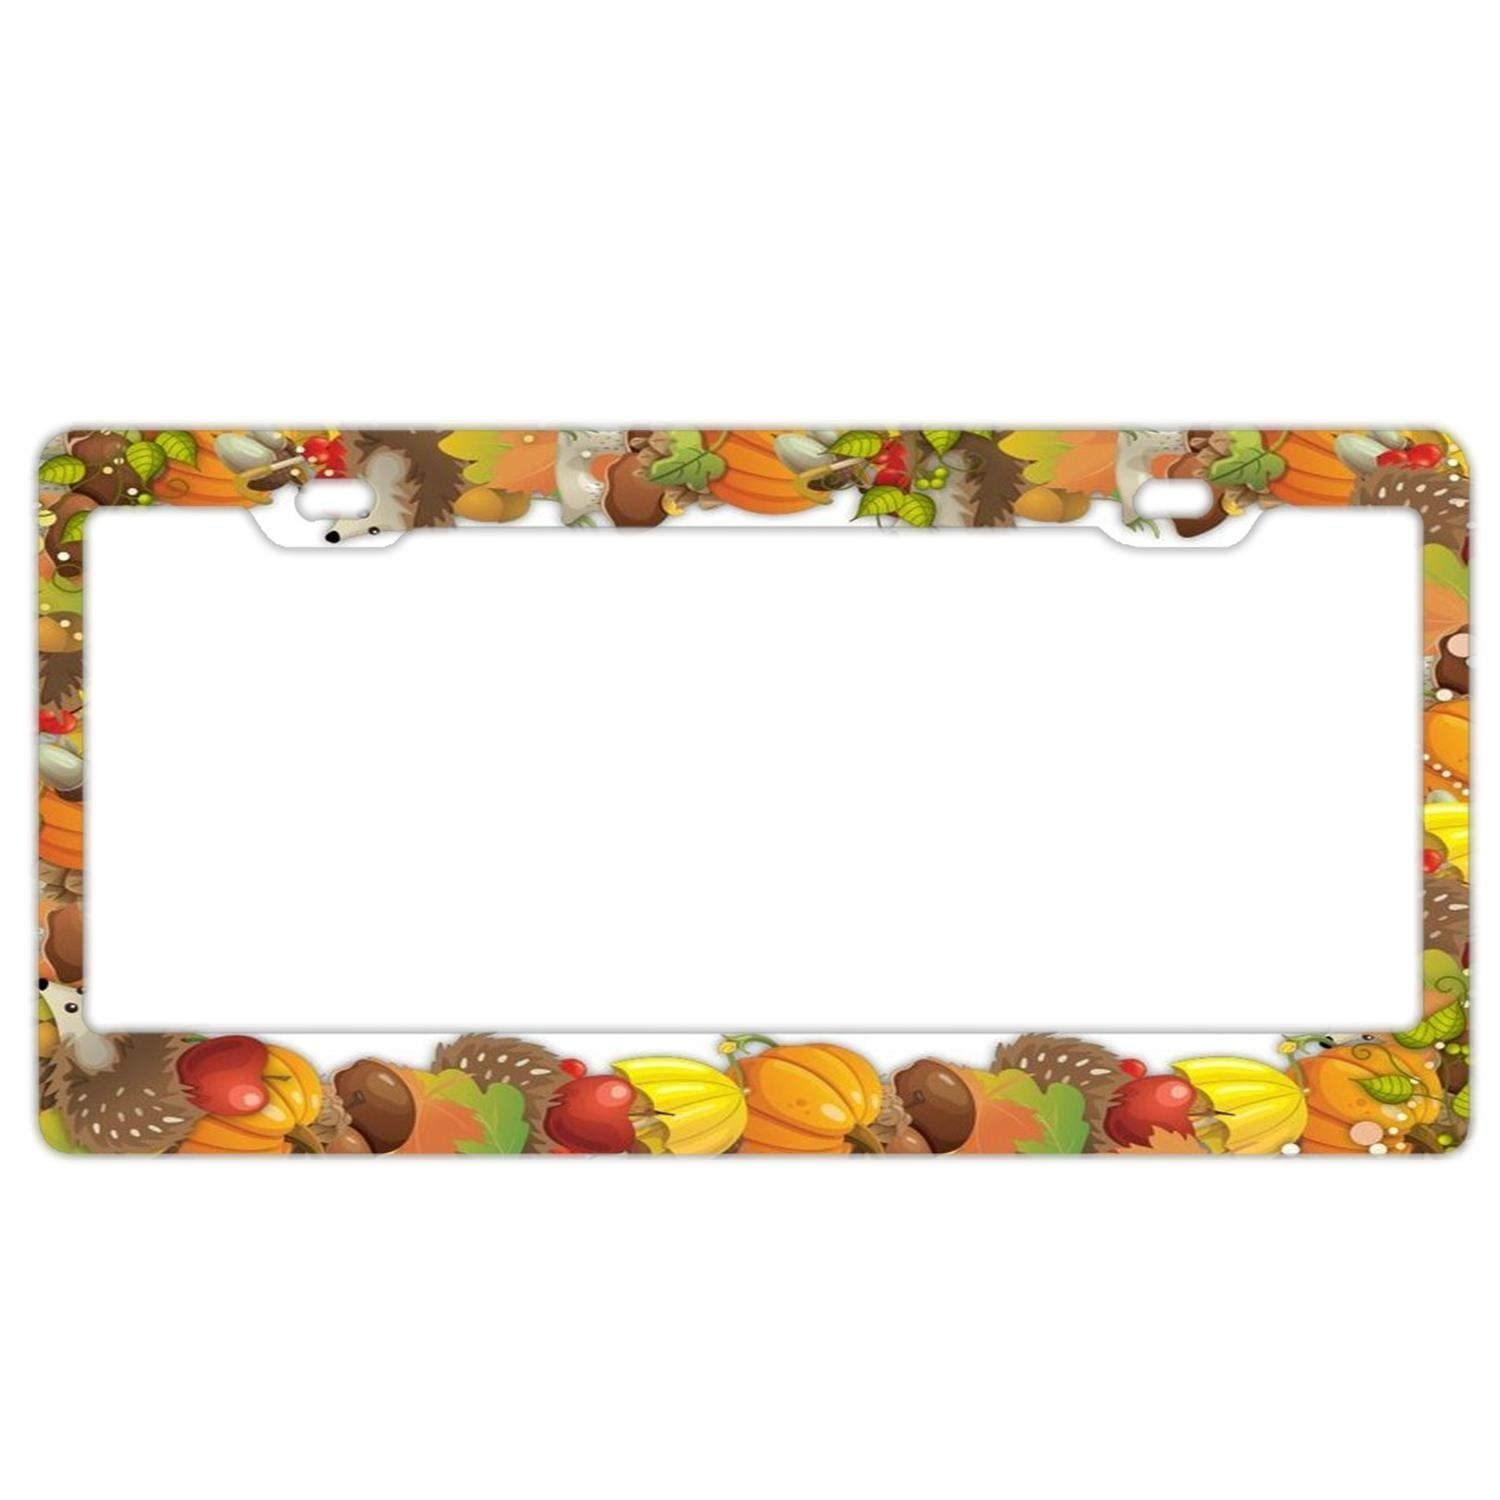 YEX Abstract Pink Muddy Camo License Plate Frame Car Tag Frame Auto License Plate Holder 12' x 6' frame-0730-577